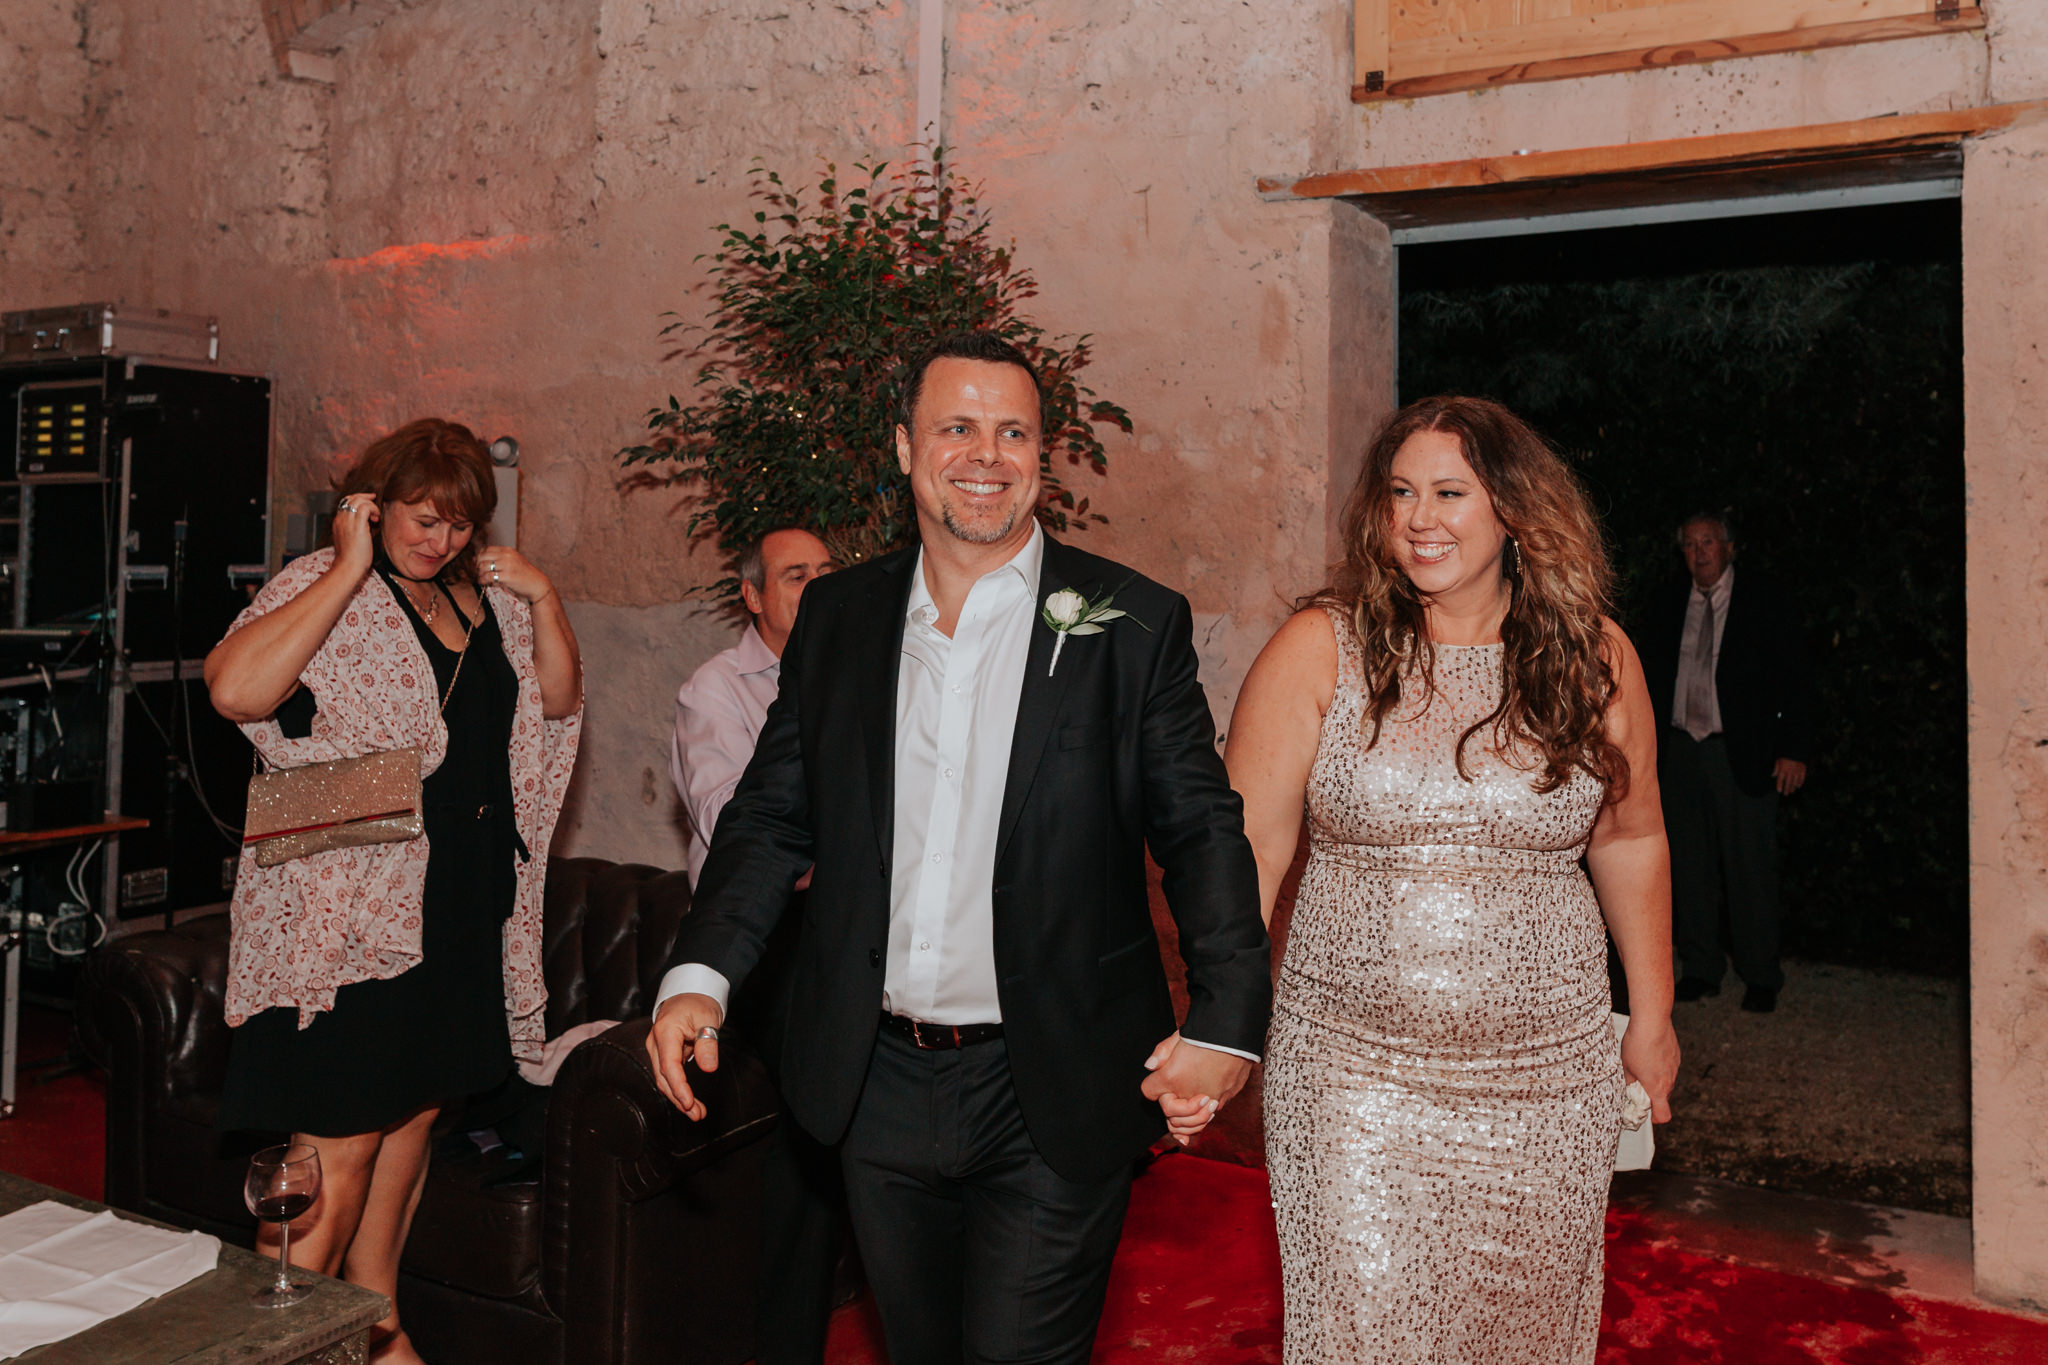 Elkie&Doug_Wedding_Italy_KristieCarrickPhotography_LOW-968.jpg